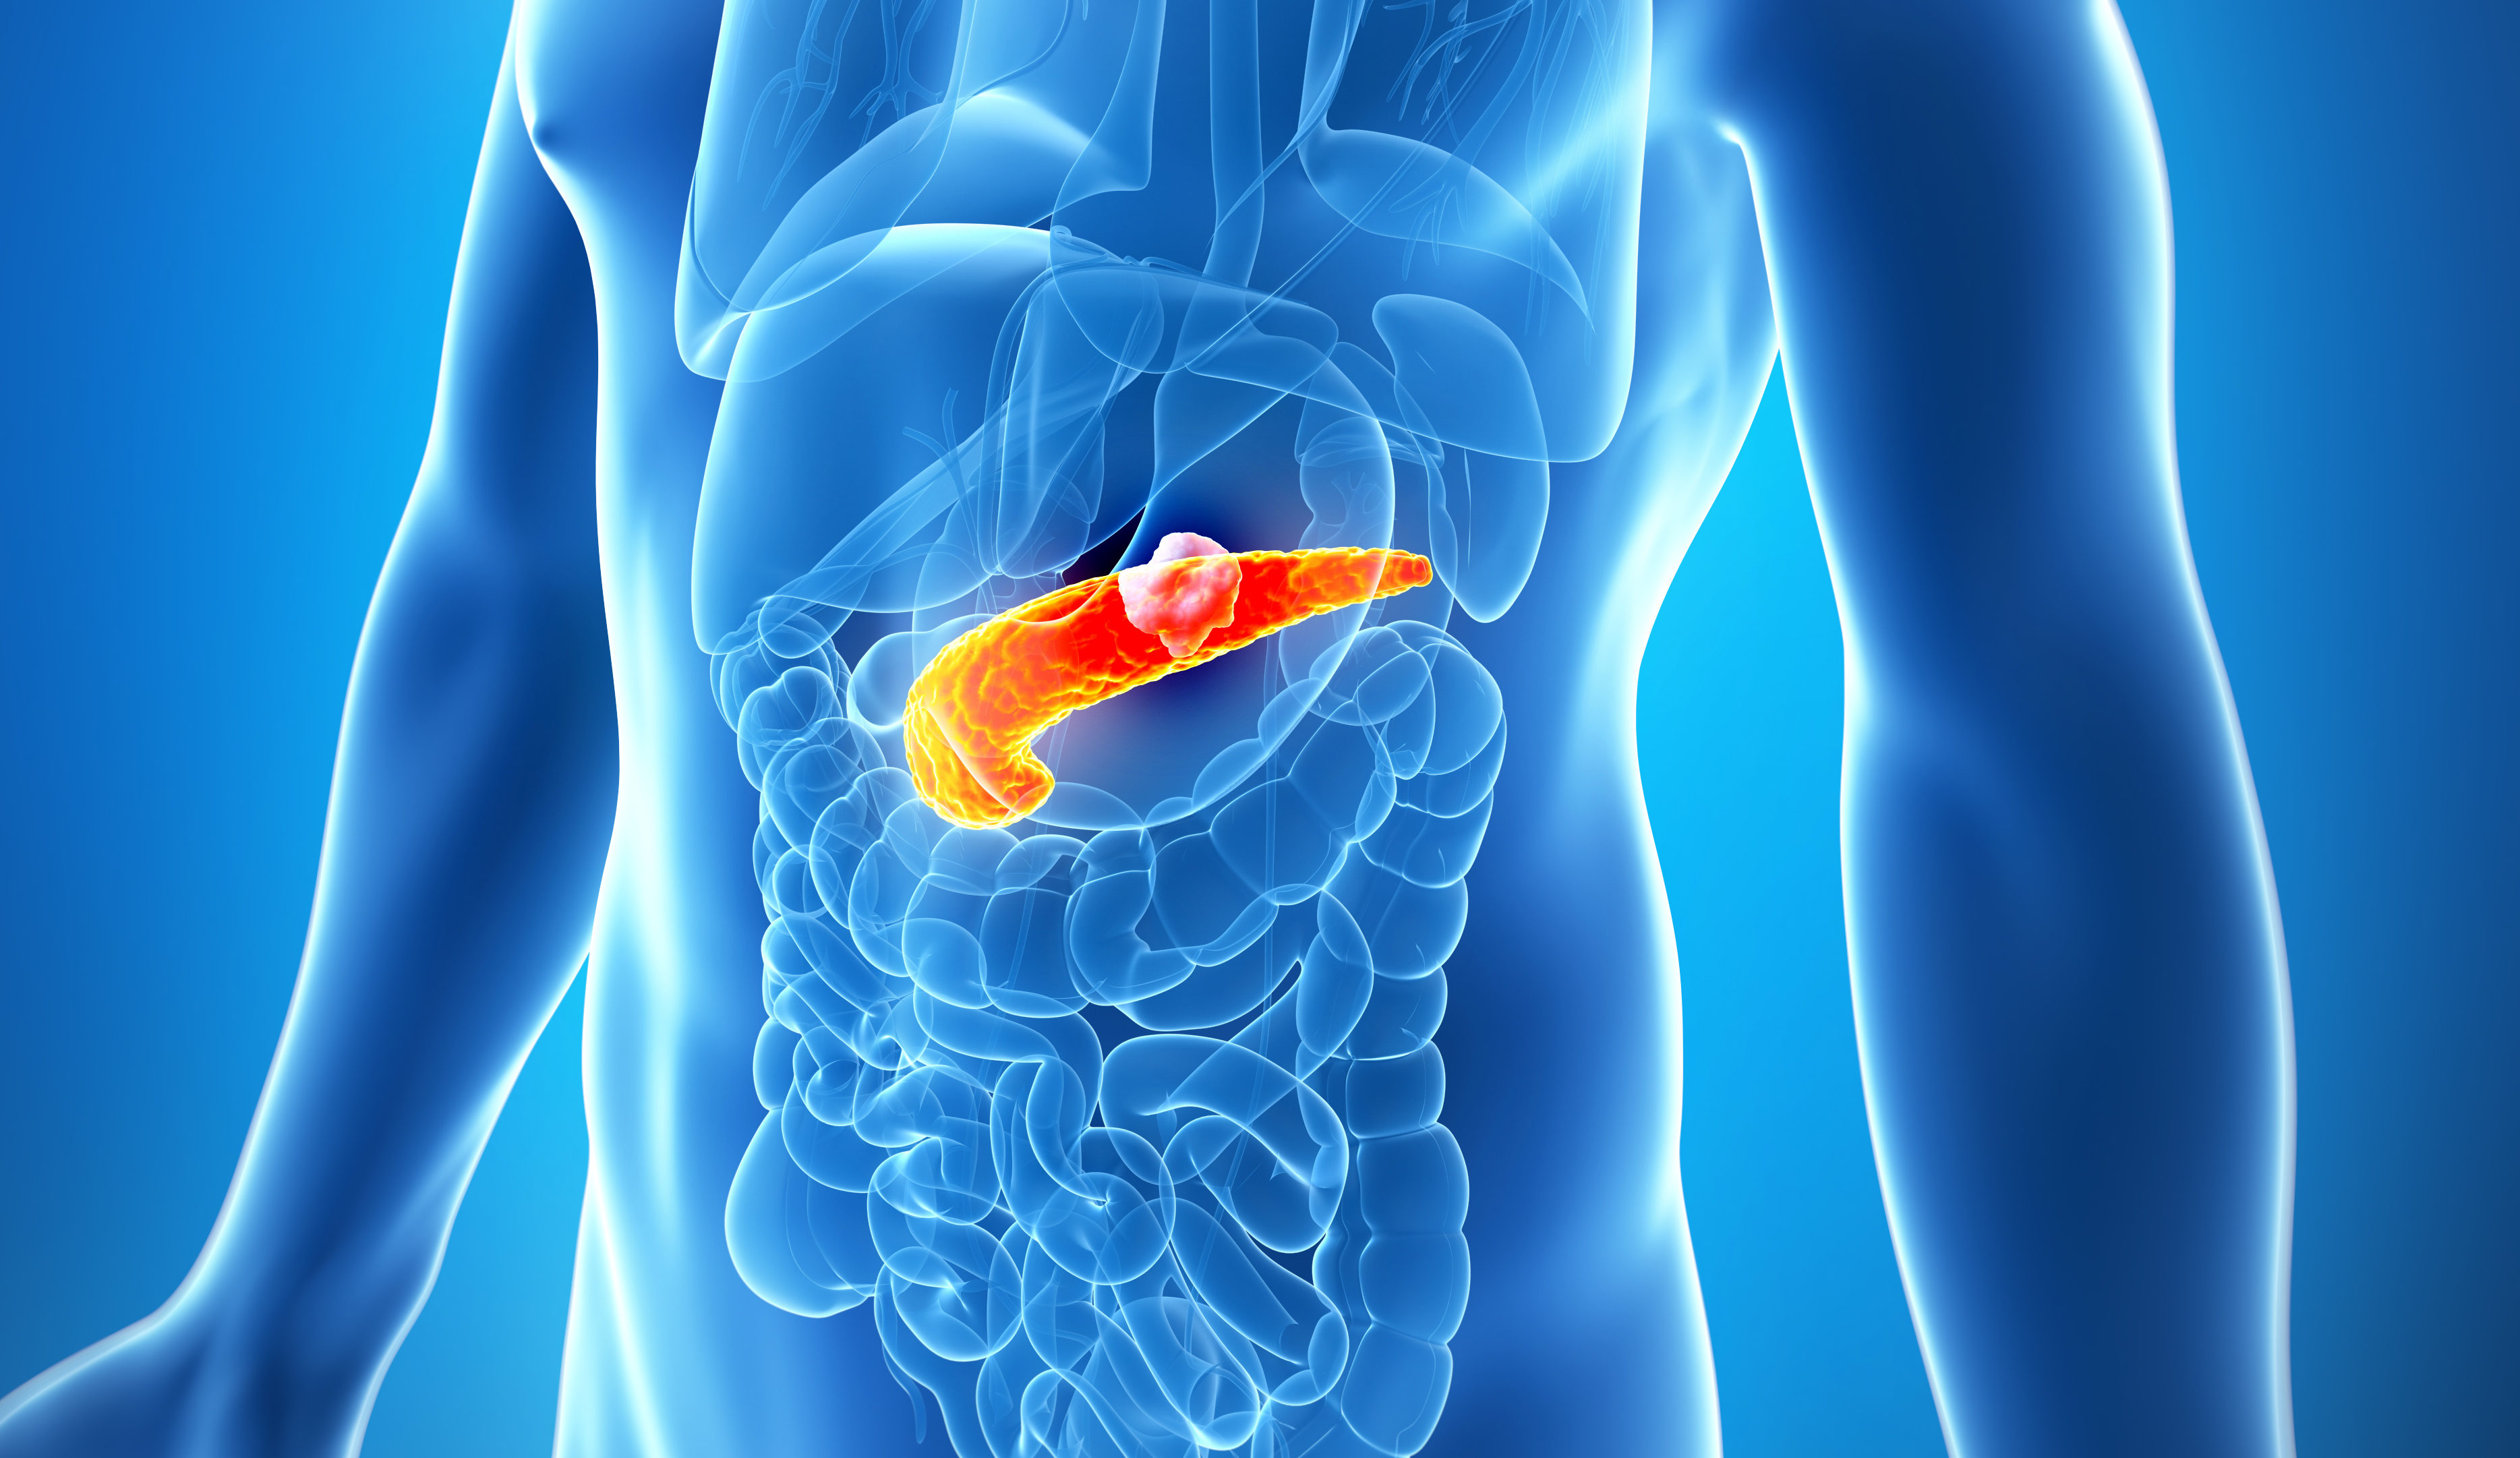 3d rendered illustration of the male pancreas - cancer